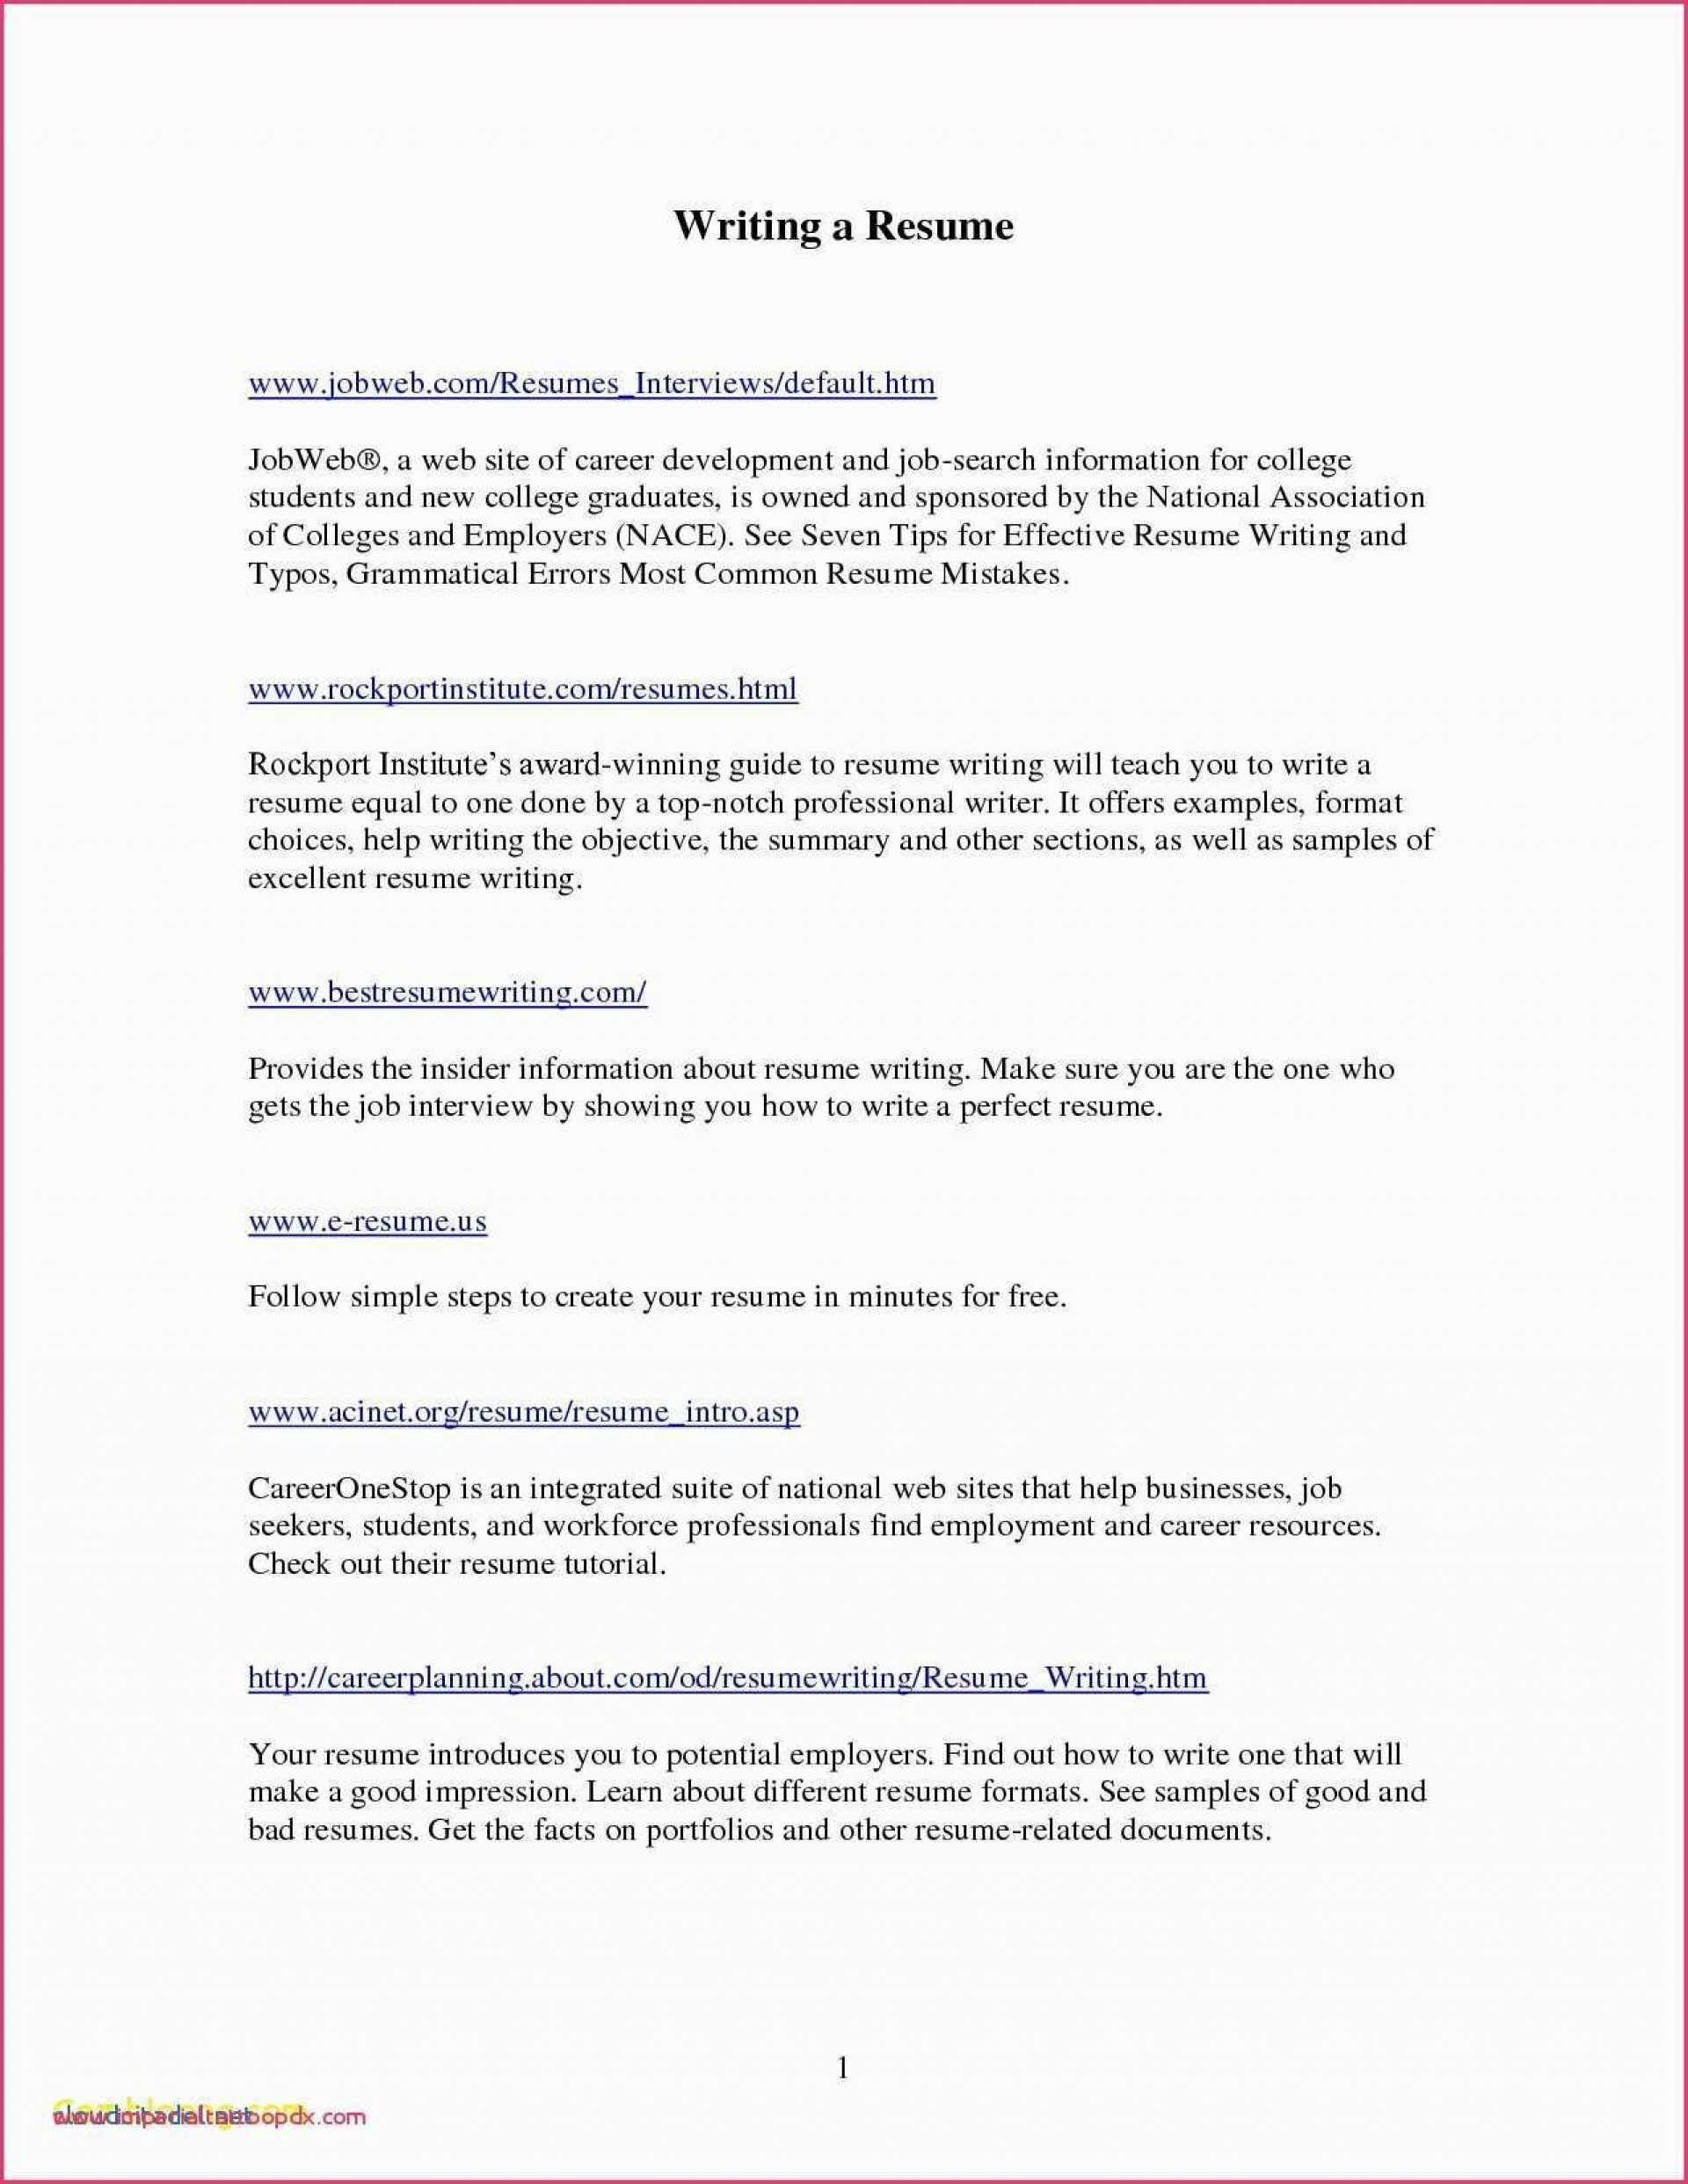 012 Apa Letter Format Template New Formal Outline Research Paper Mla Of Unusual Example Sample Free Word 1920